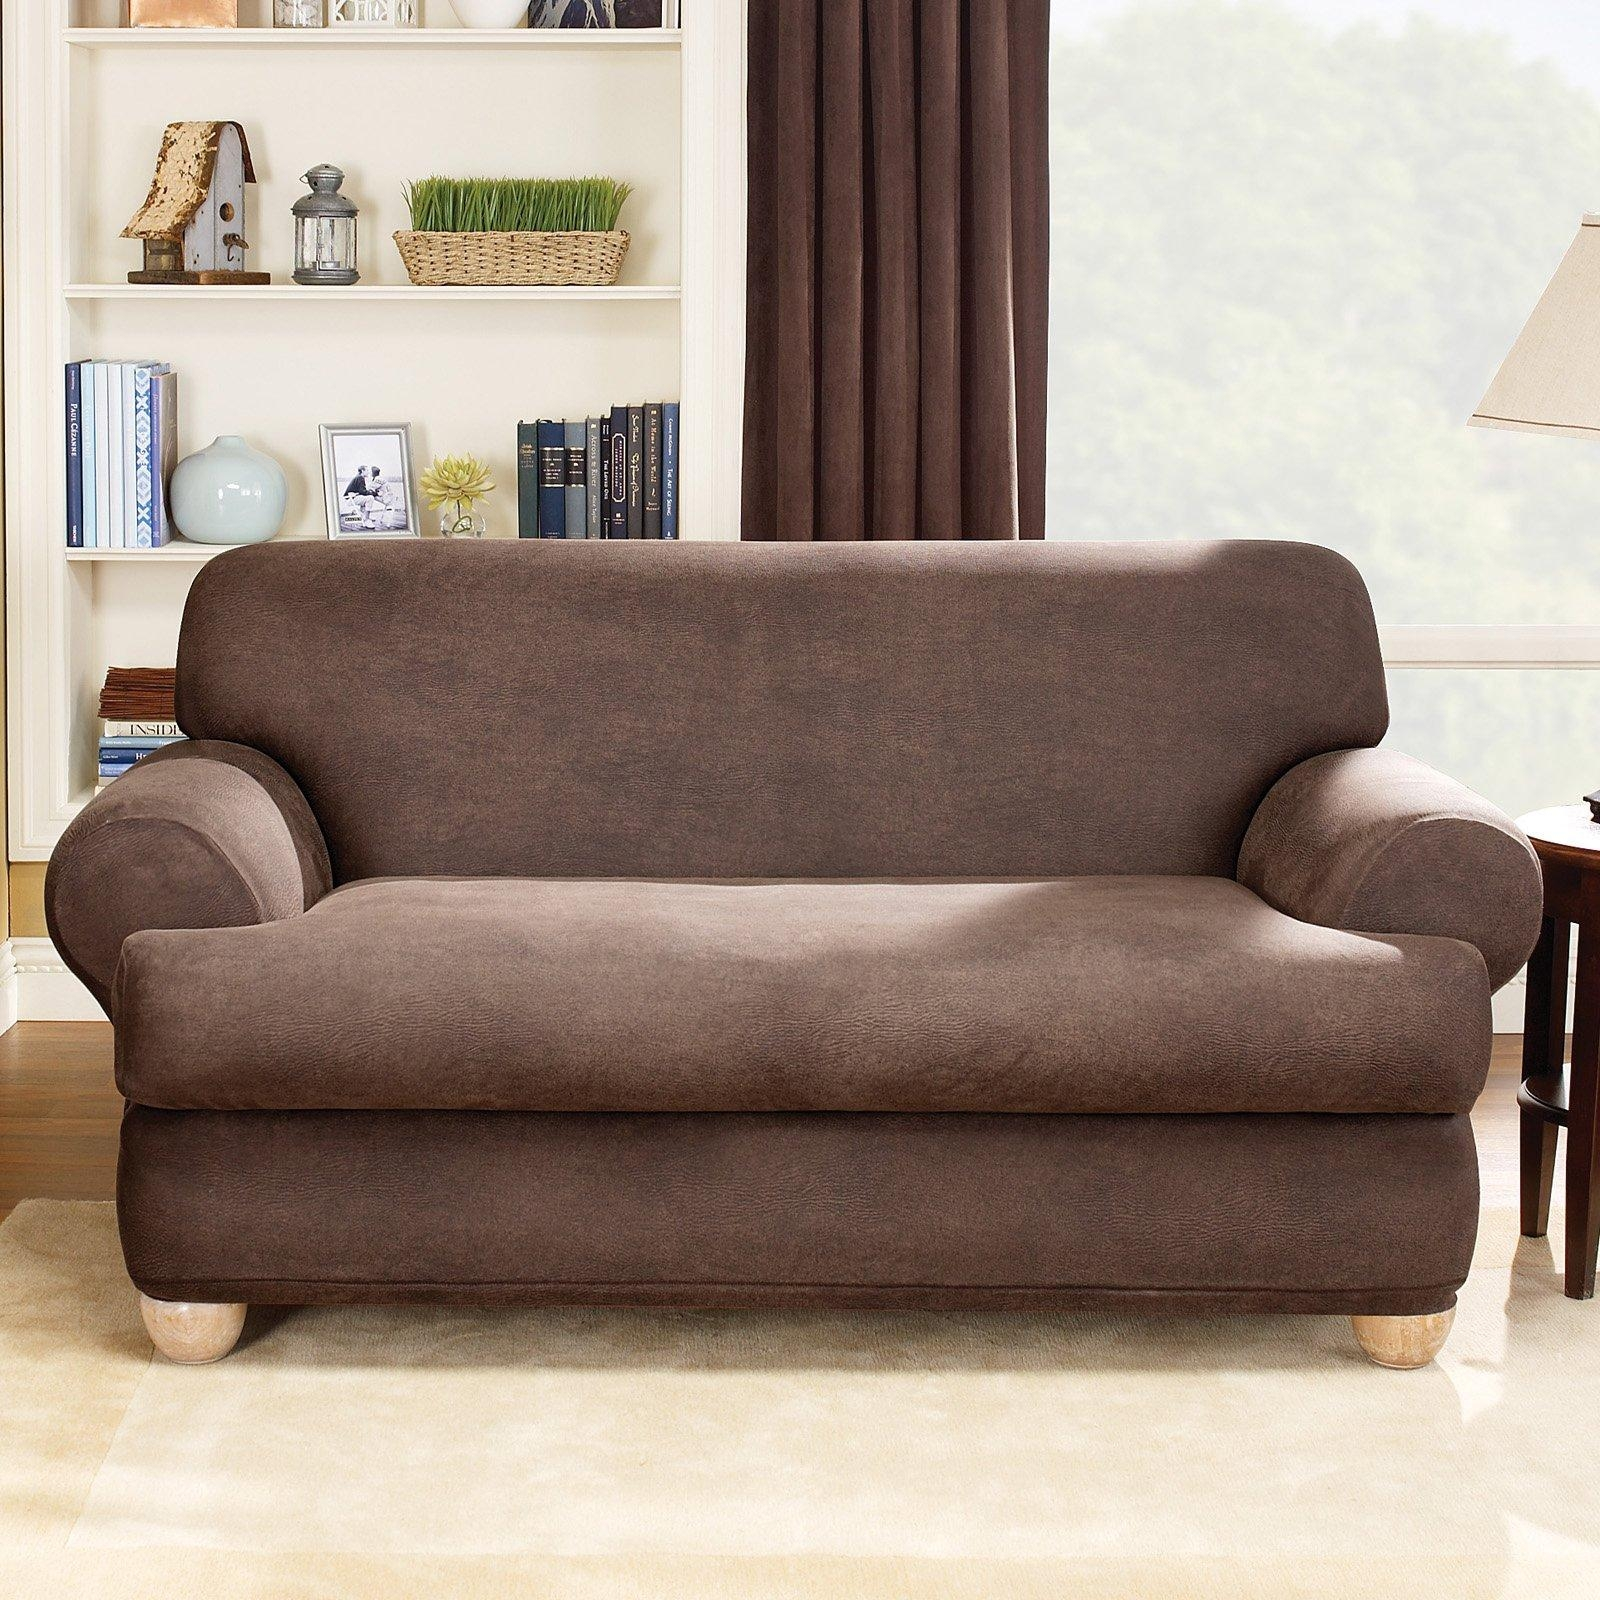 Sure Fit Lexington T Cushion One Piece Loveseat Slipcover | Hayneedle Throughout Loveseat Slipcovers T Cushion (View 9 of 20)